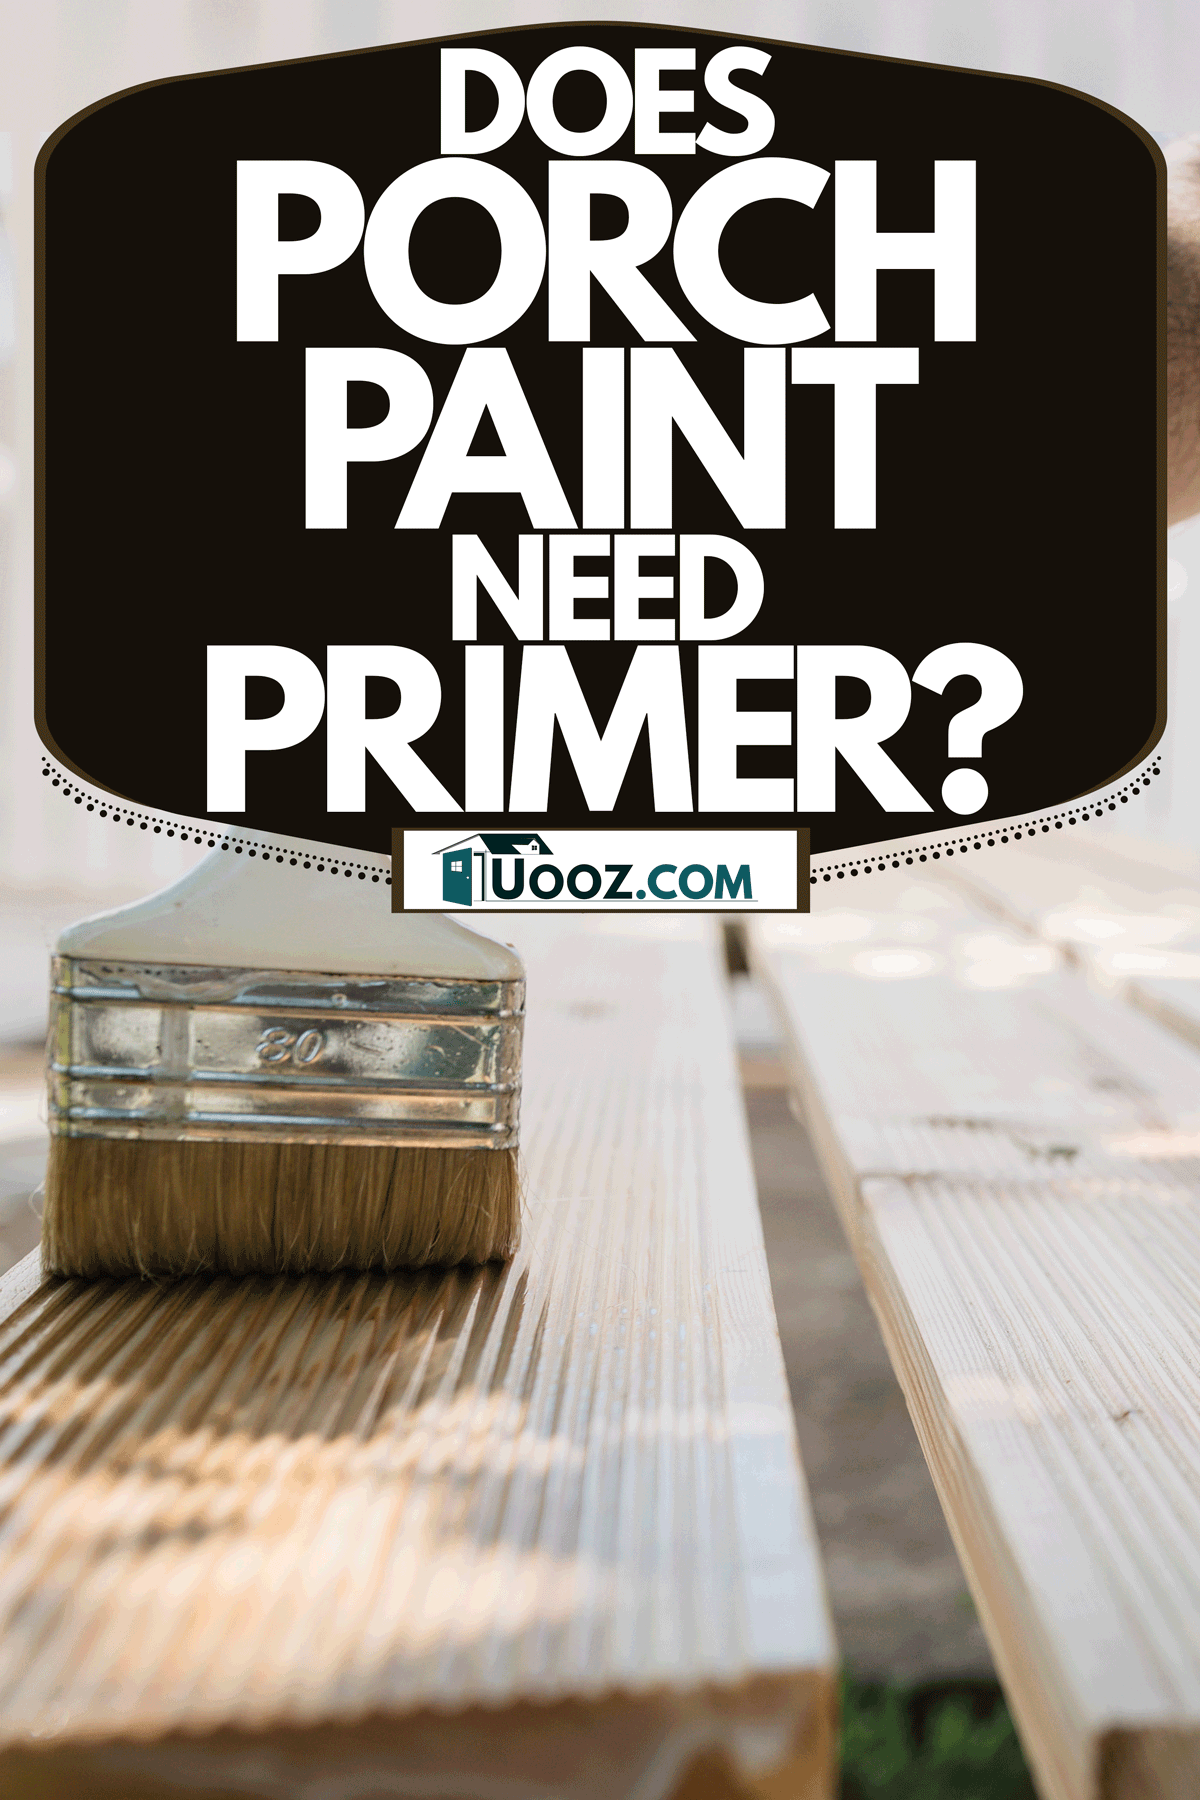 A man painting the porch with primer, Does Porch Paint Need Primer?